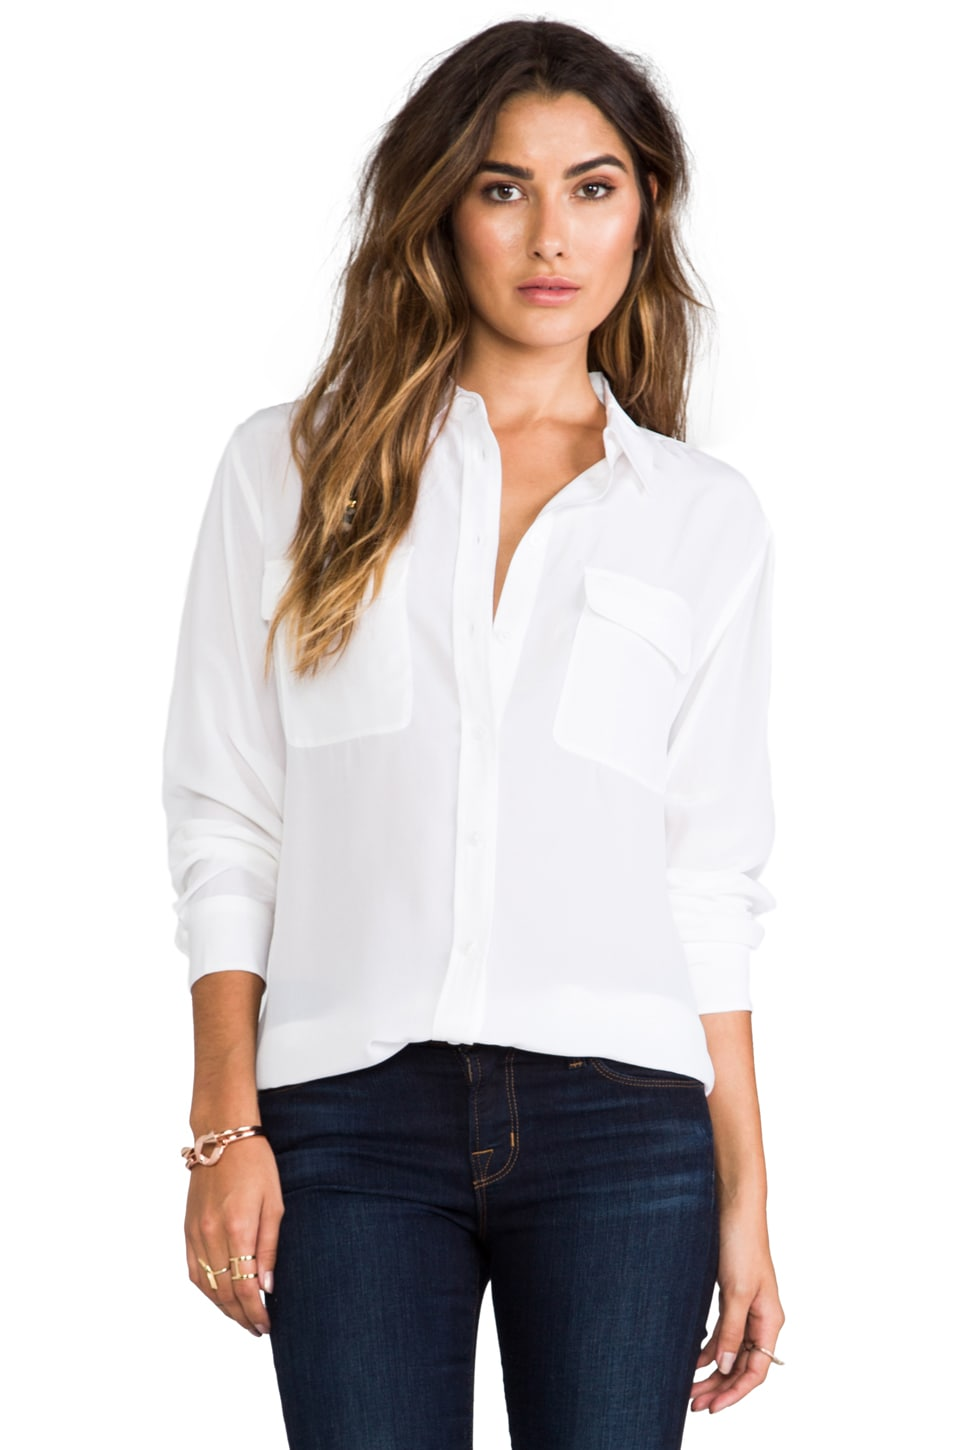 Equipment Signature Blouse in Bright White